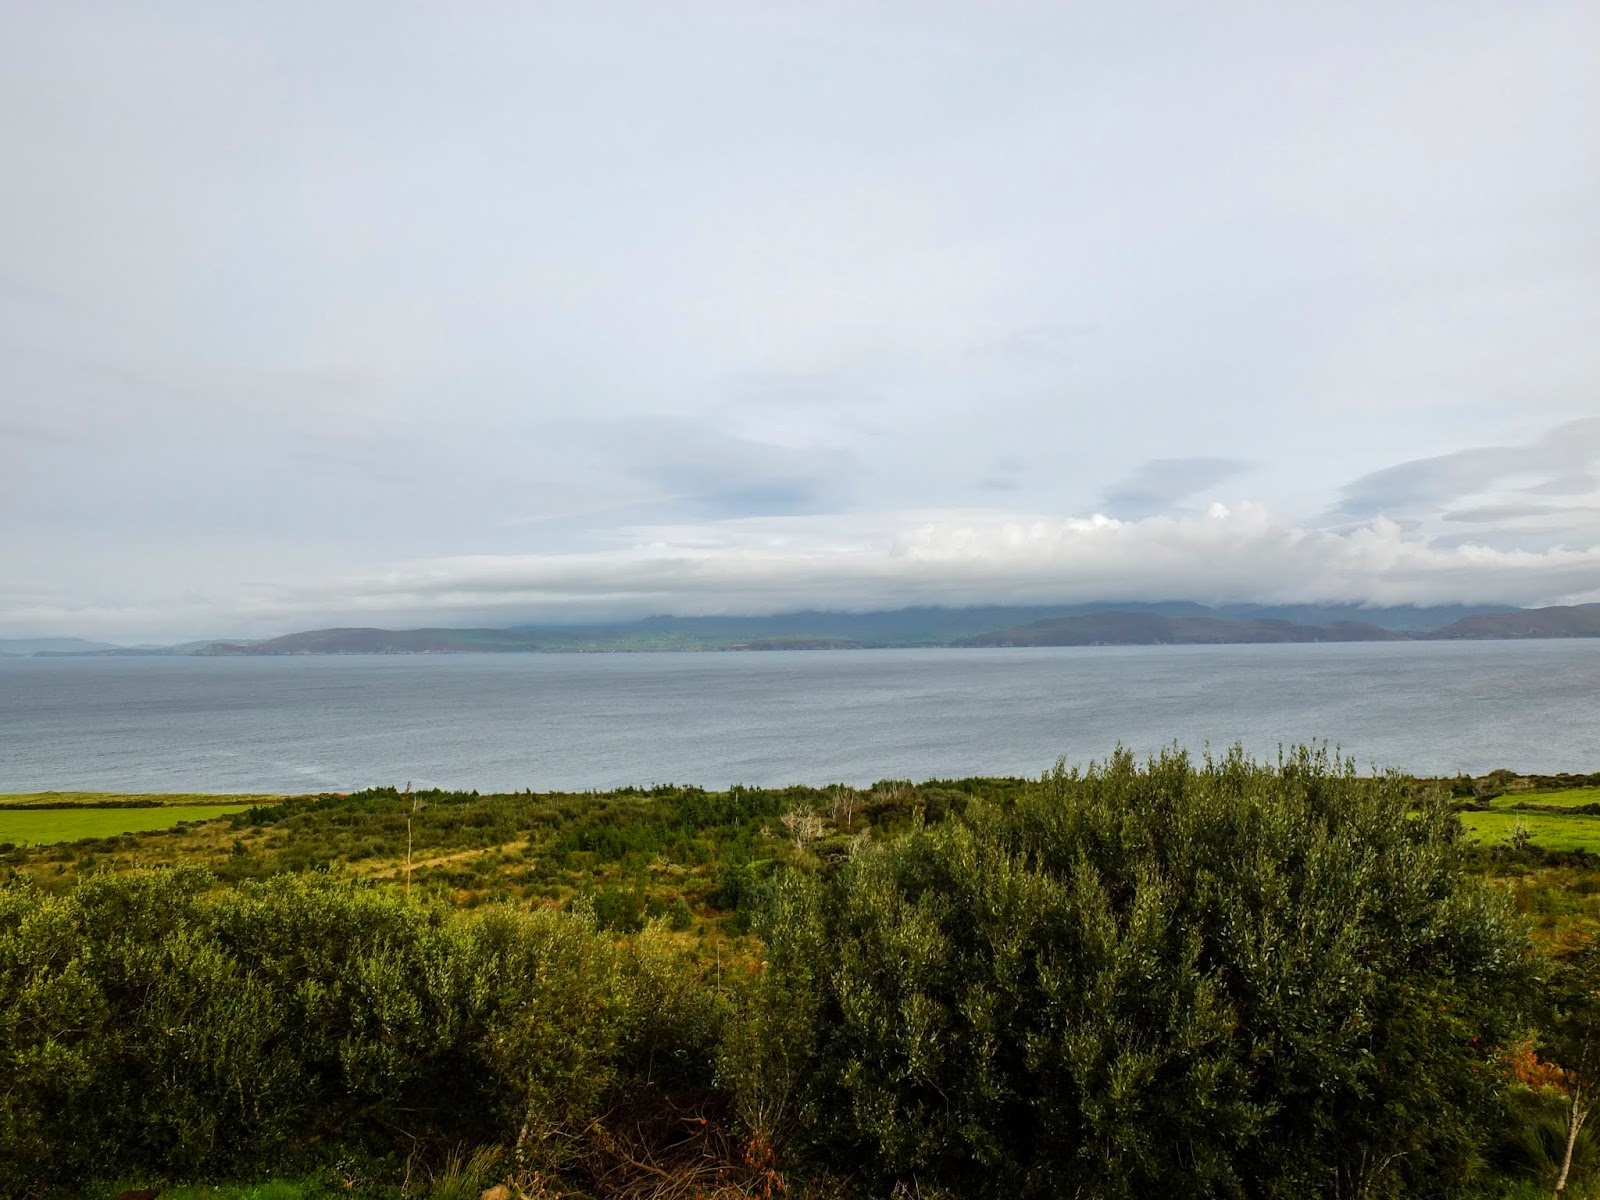 Views of the Iveragh Peninsula from the roadside on a gloomy day.